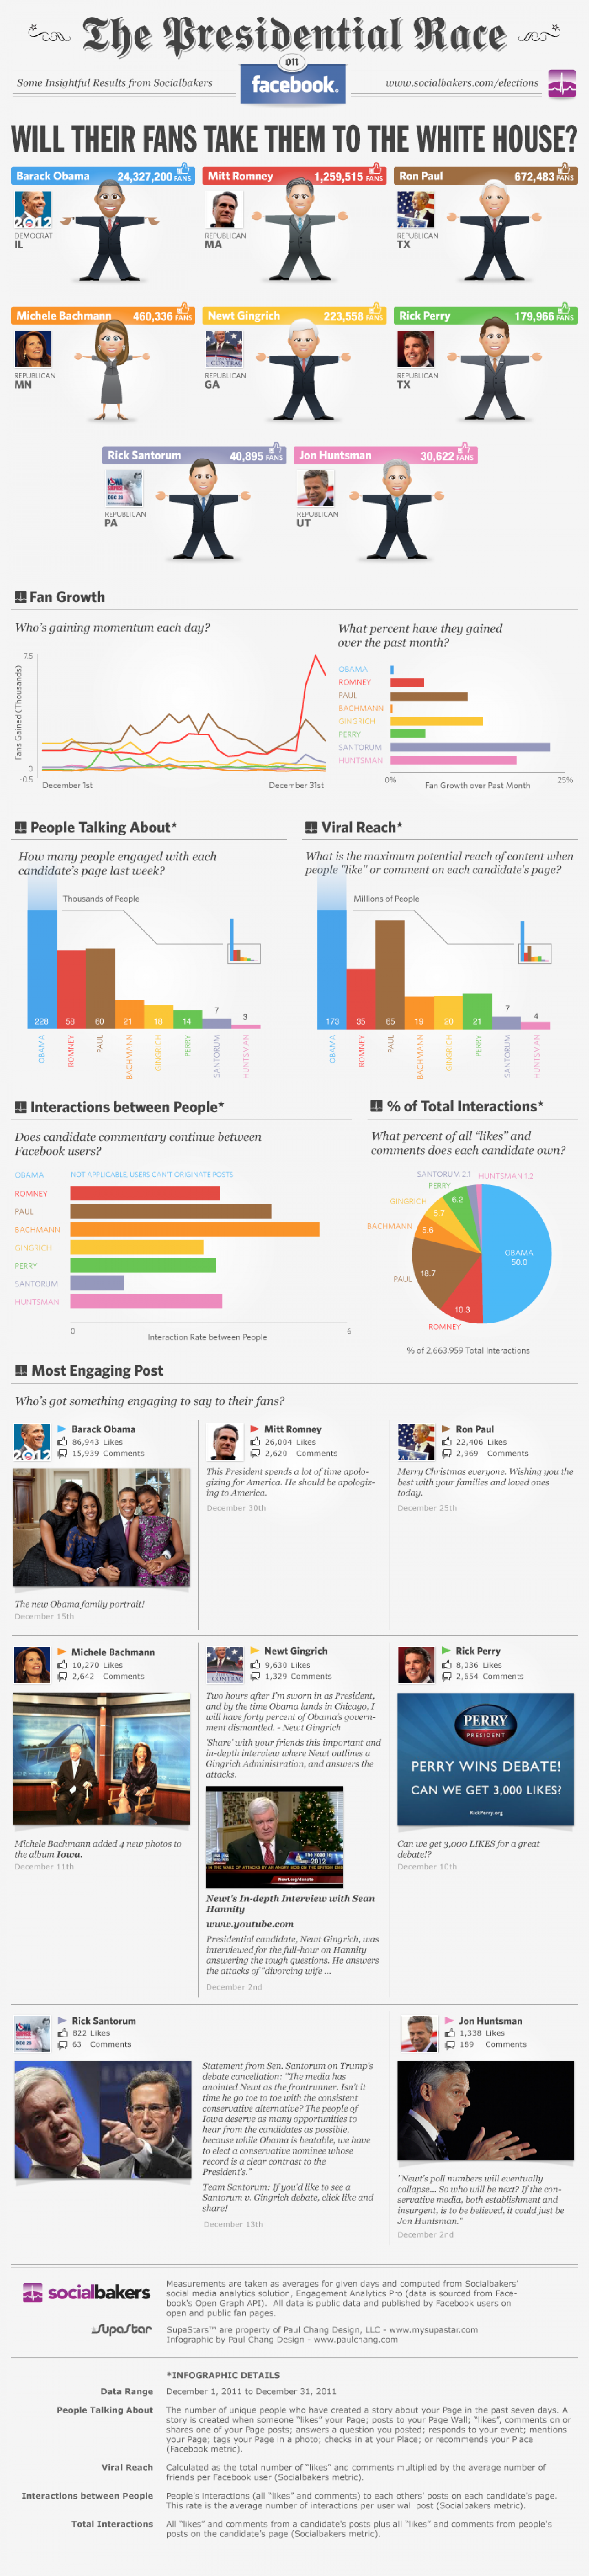 The U.S. Presidential Race On Facebook Infographic